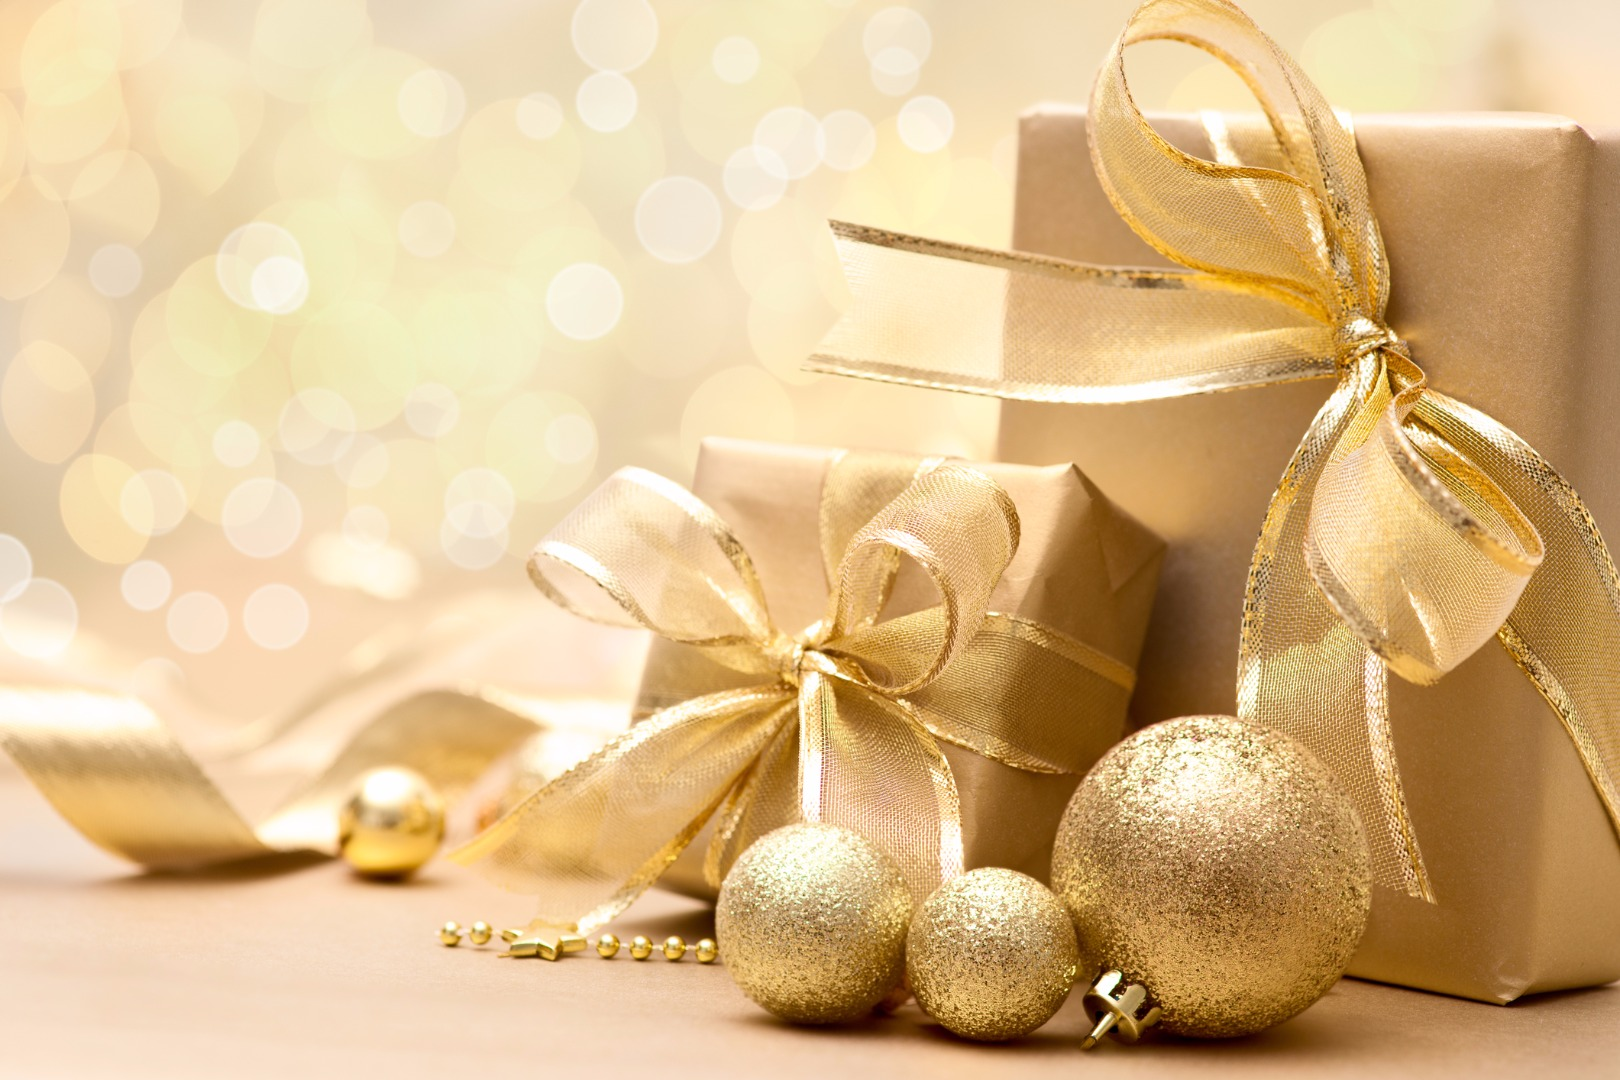 gold-gift-boxes-ornamentsjpg